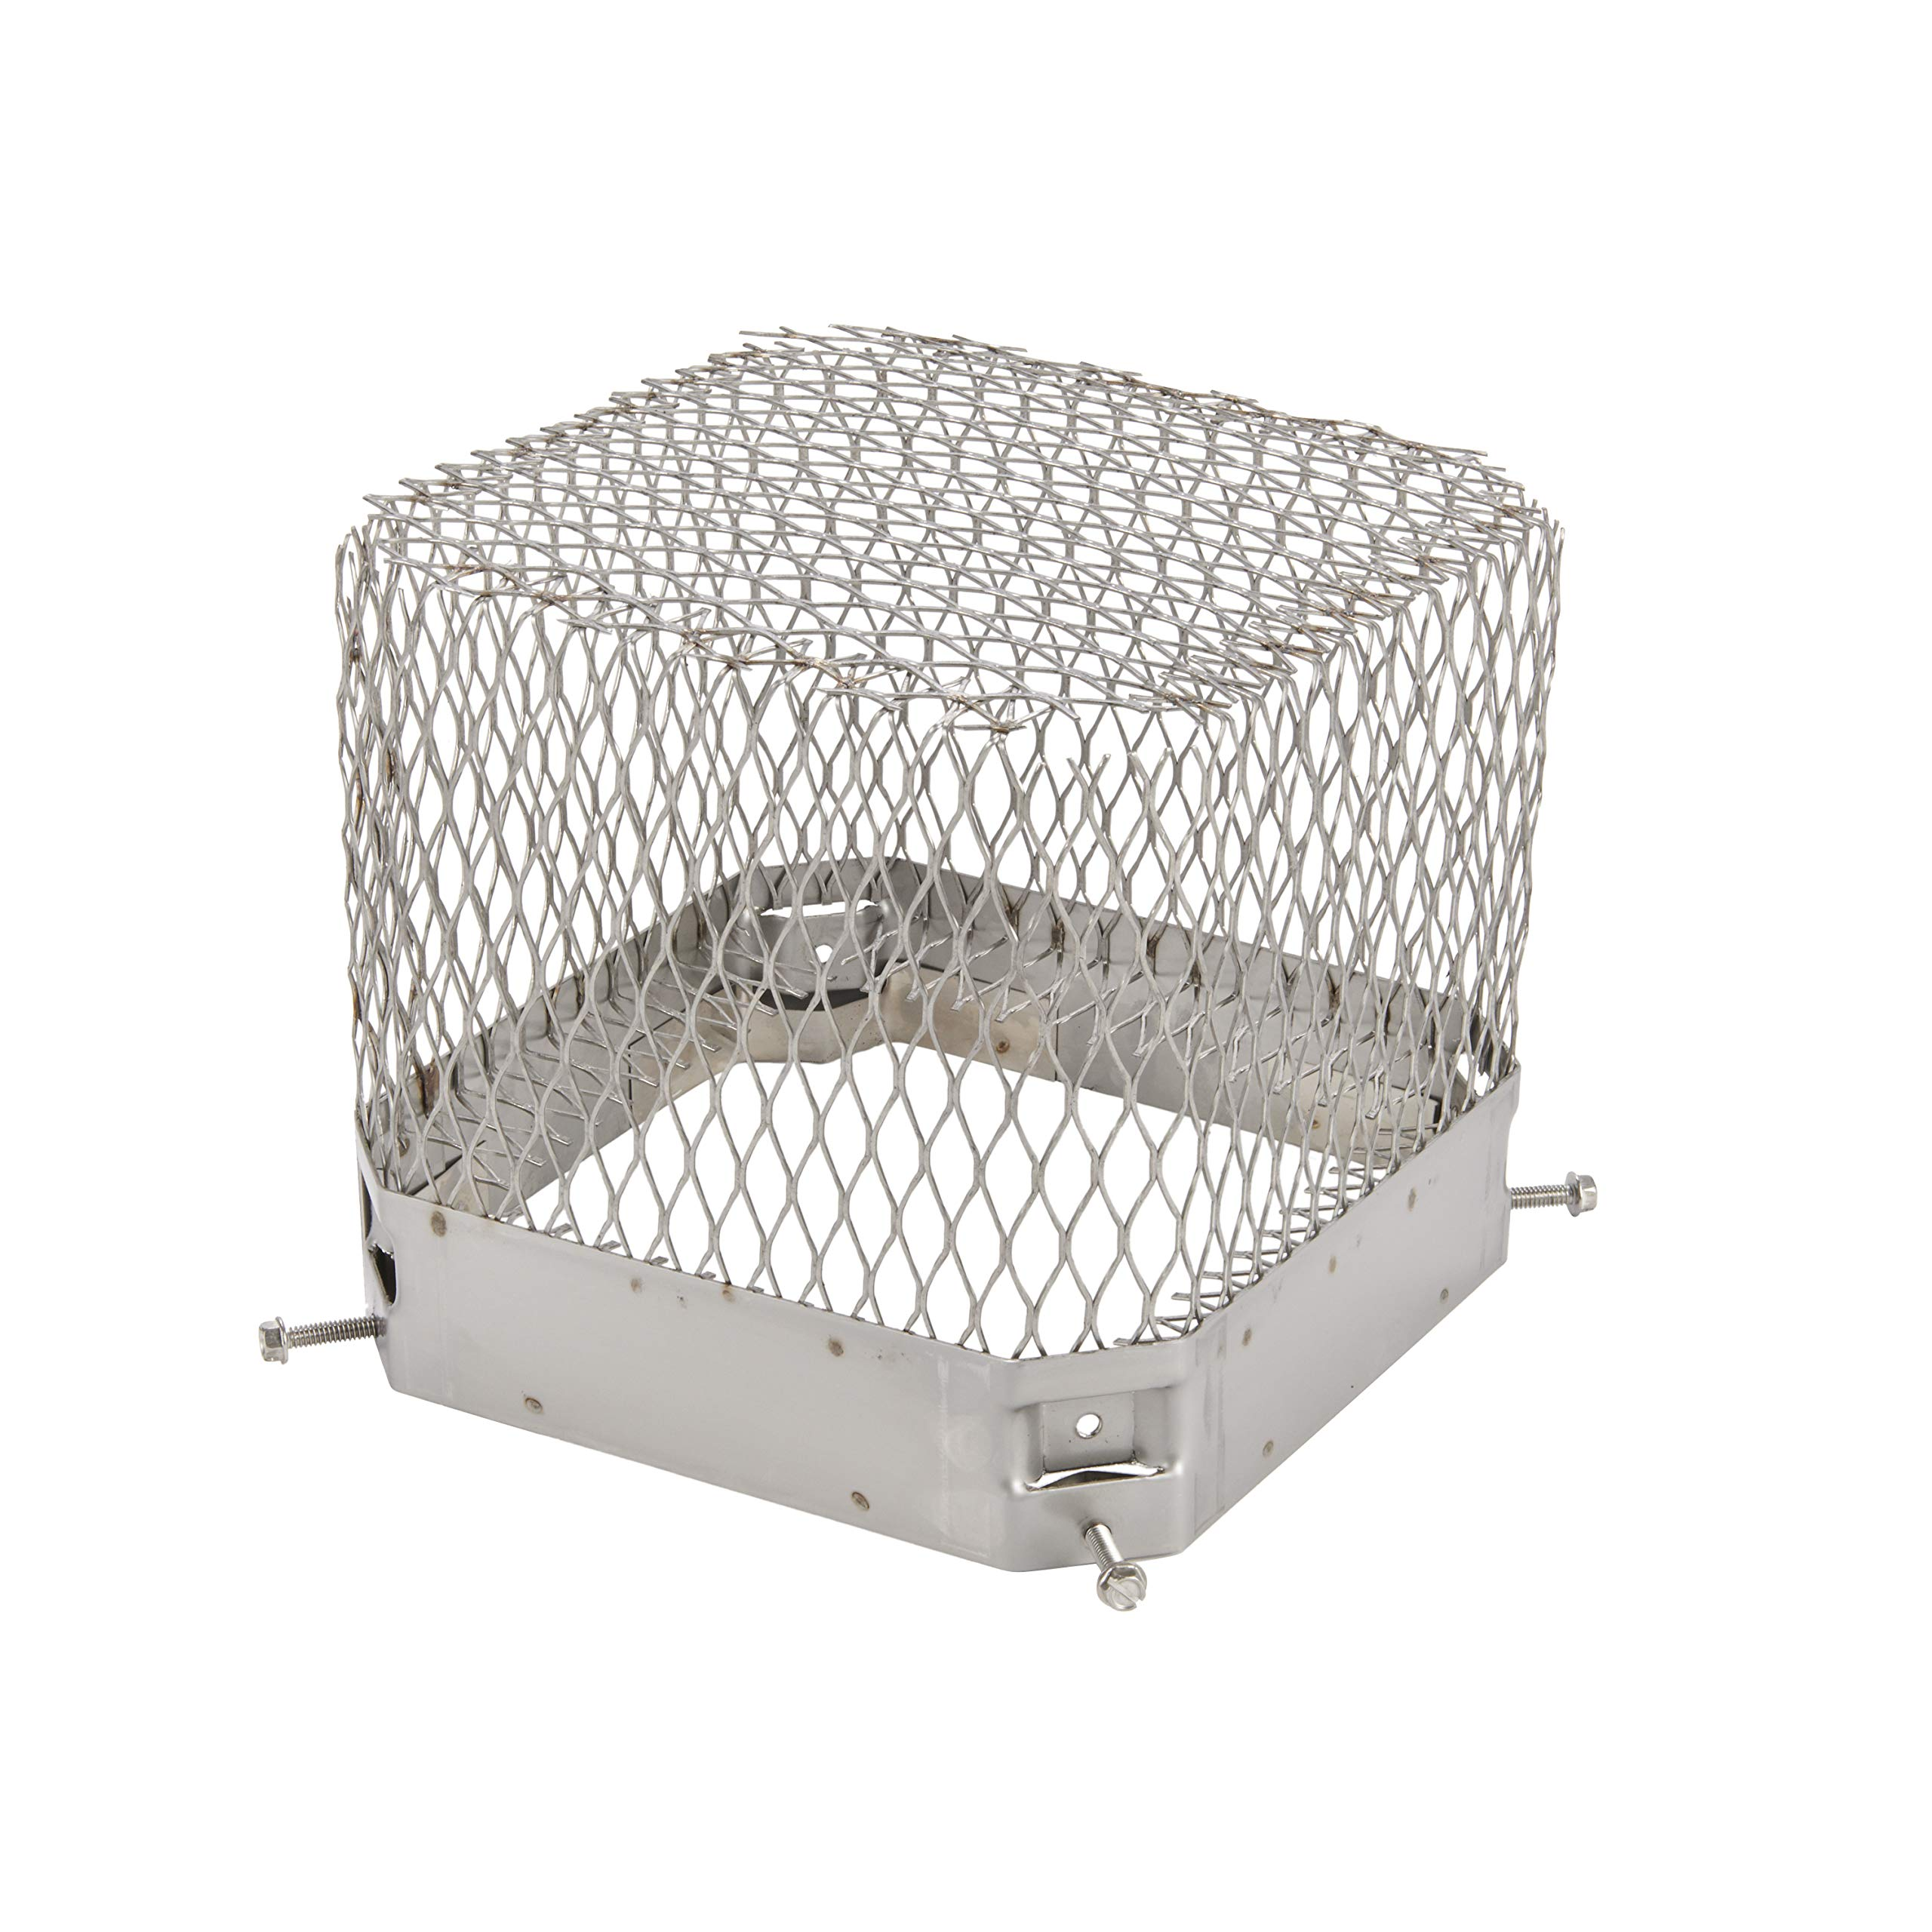 HY-C RS99 Stainless Steel Raccoon Screen, 9'' x 9'' x 6'' by HY-C